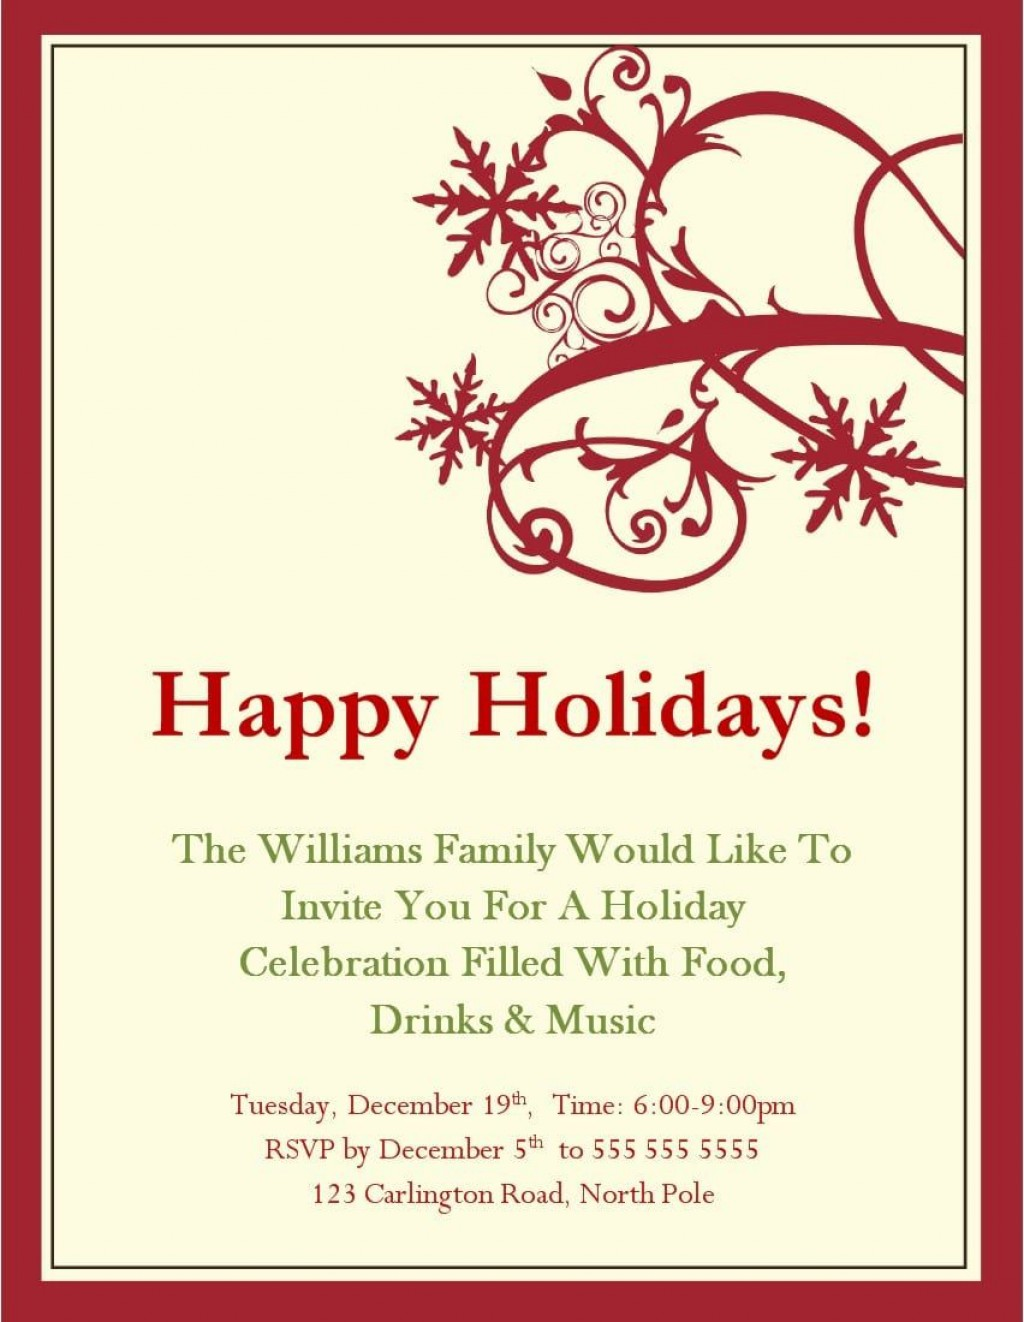 007 Remarkable Free Holiday Party Invitation Template Idea  Templates Printable Downloadable Christma OnlineLarge